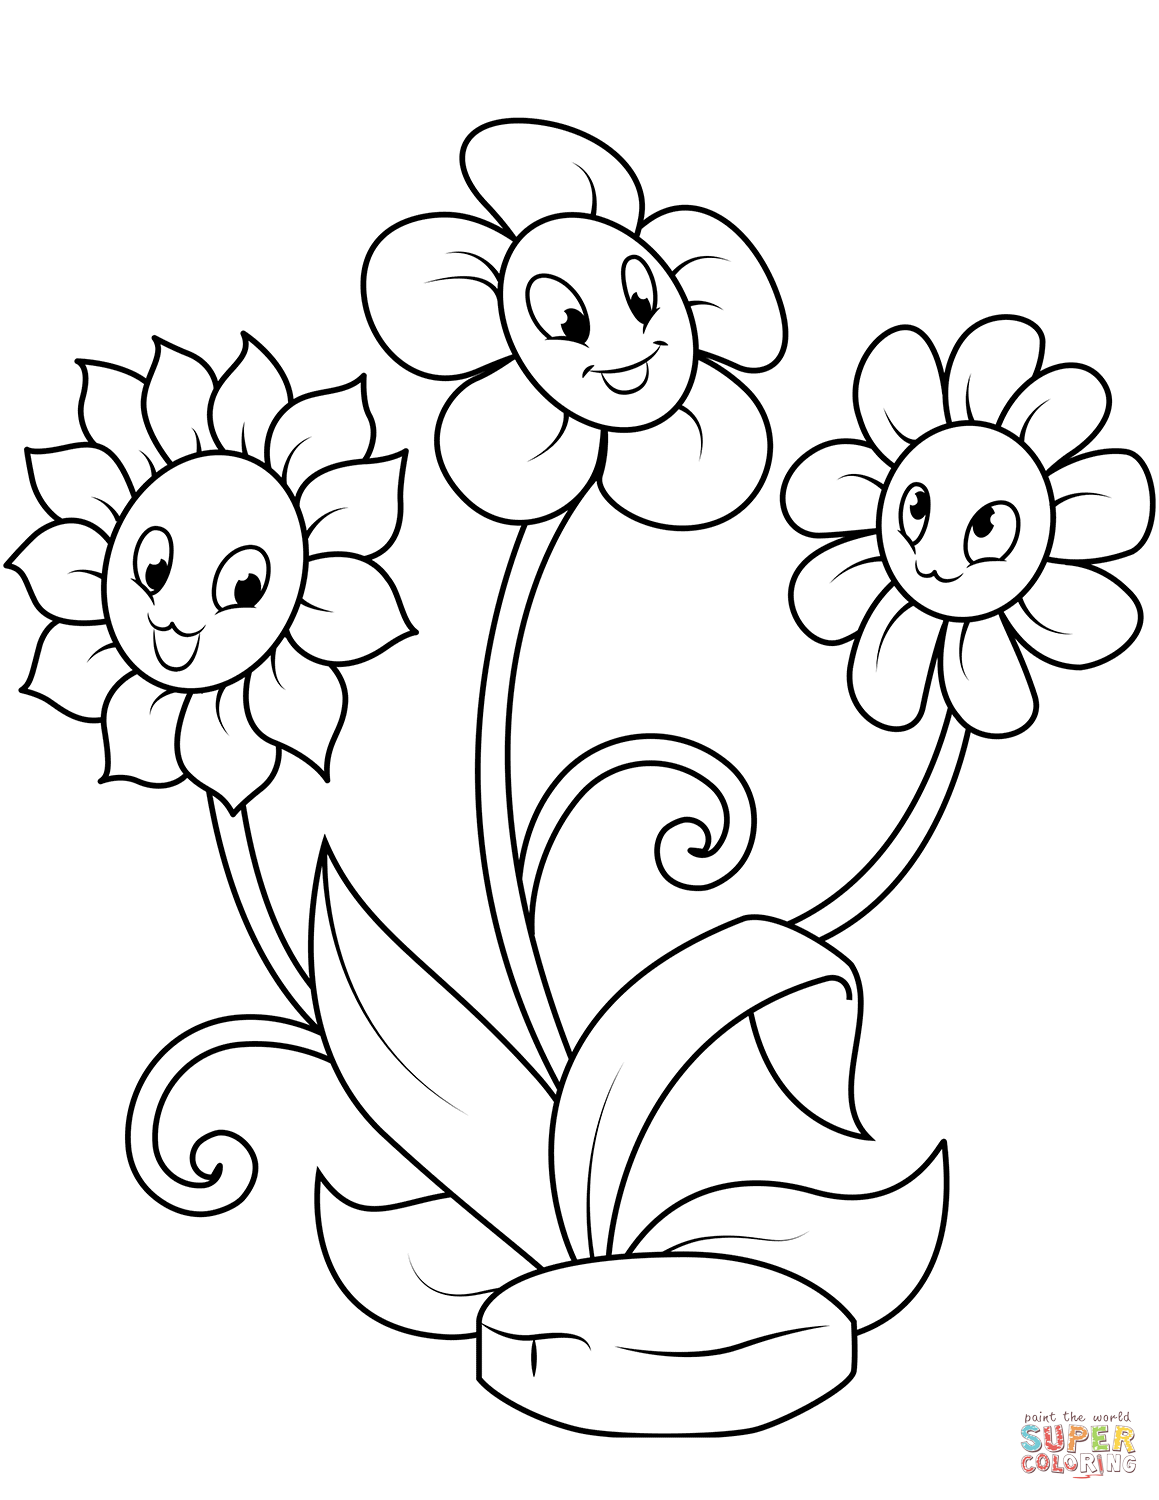 cute flower coloring pages cute spring flower coloring page 3 free clip art flower coloring cute pages